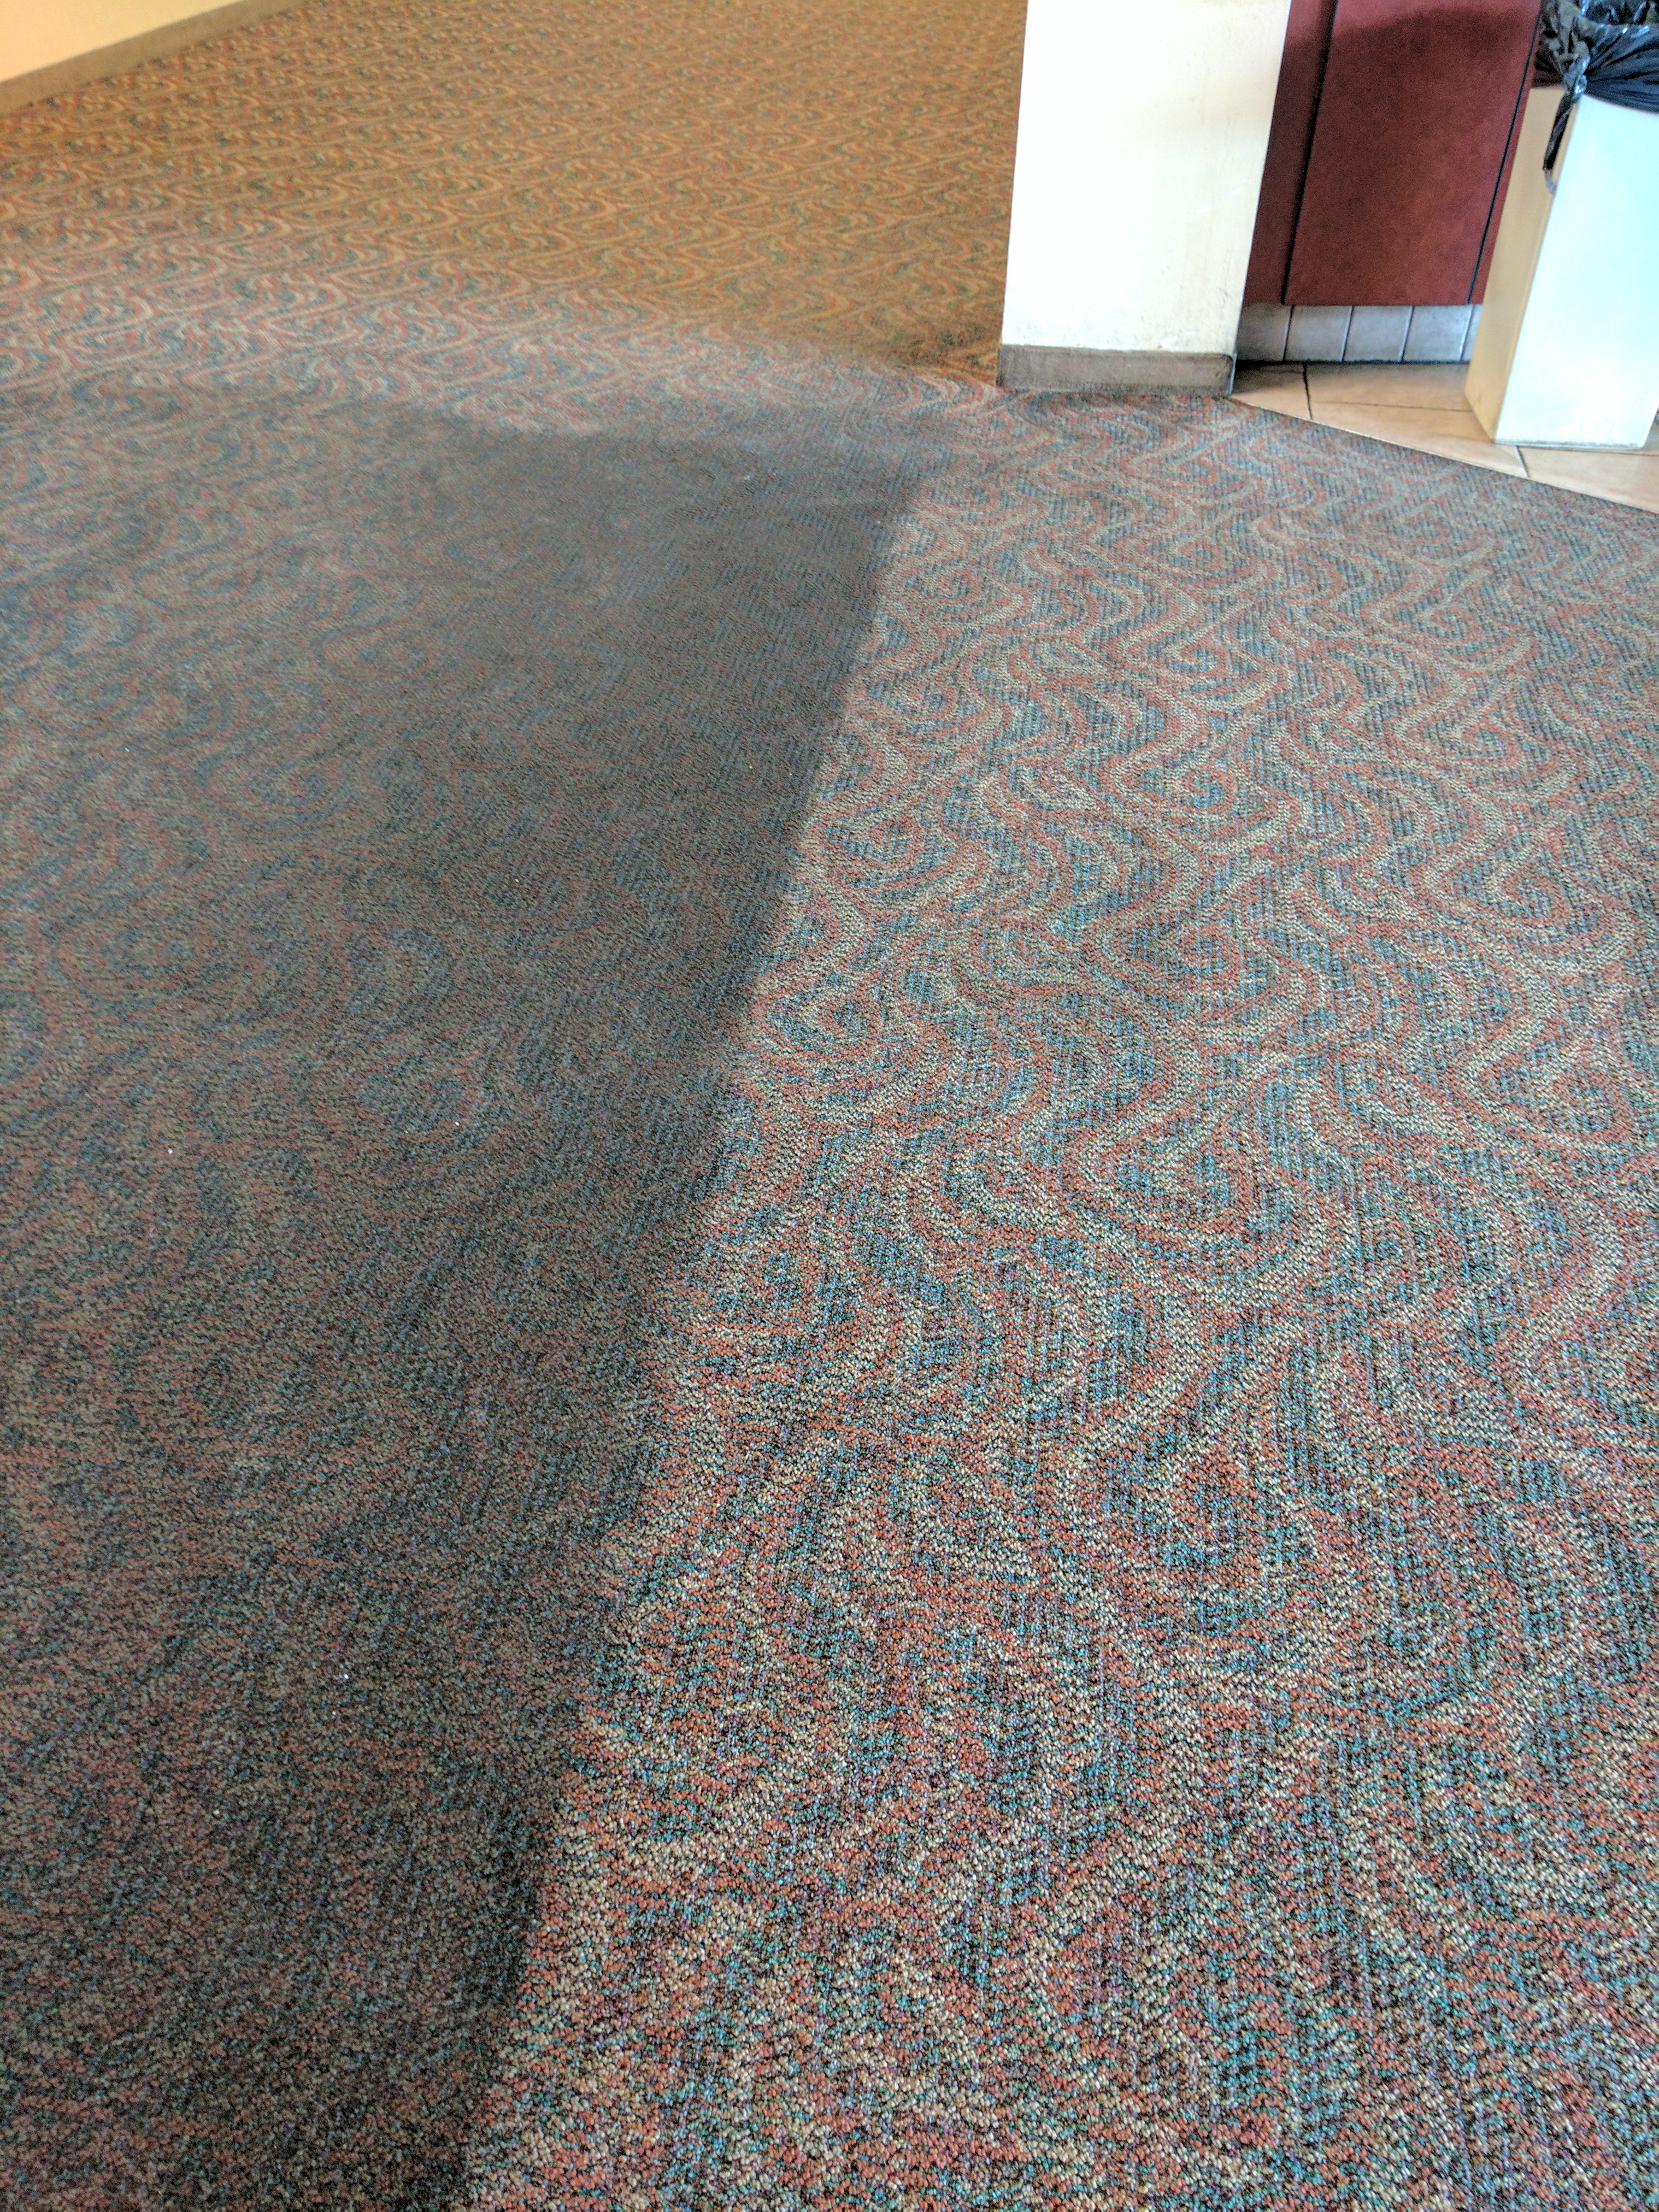 Commercial glue down carpet cleaning